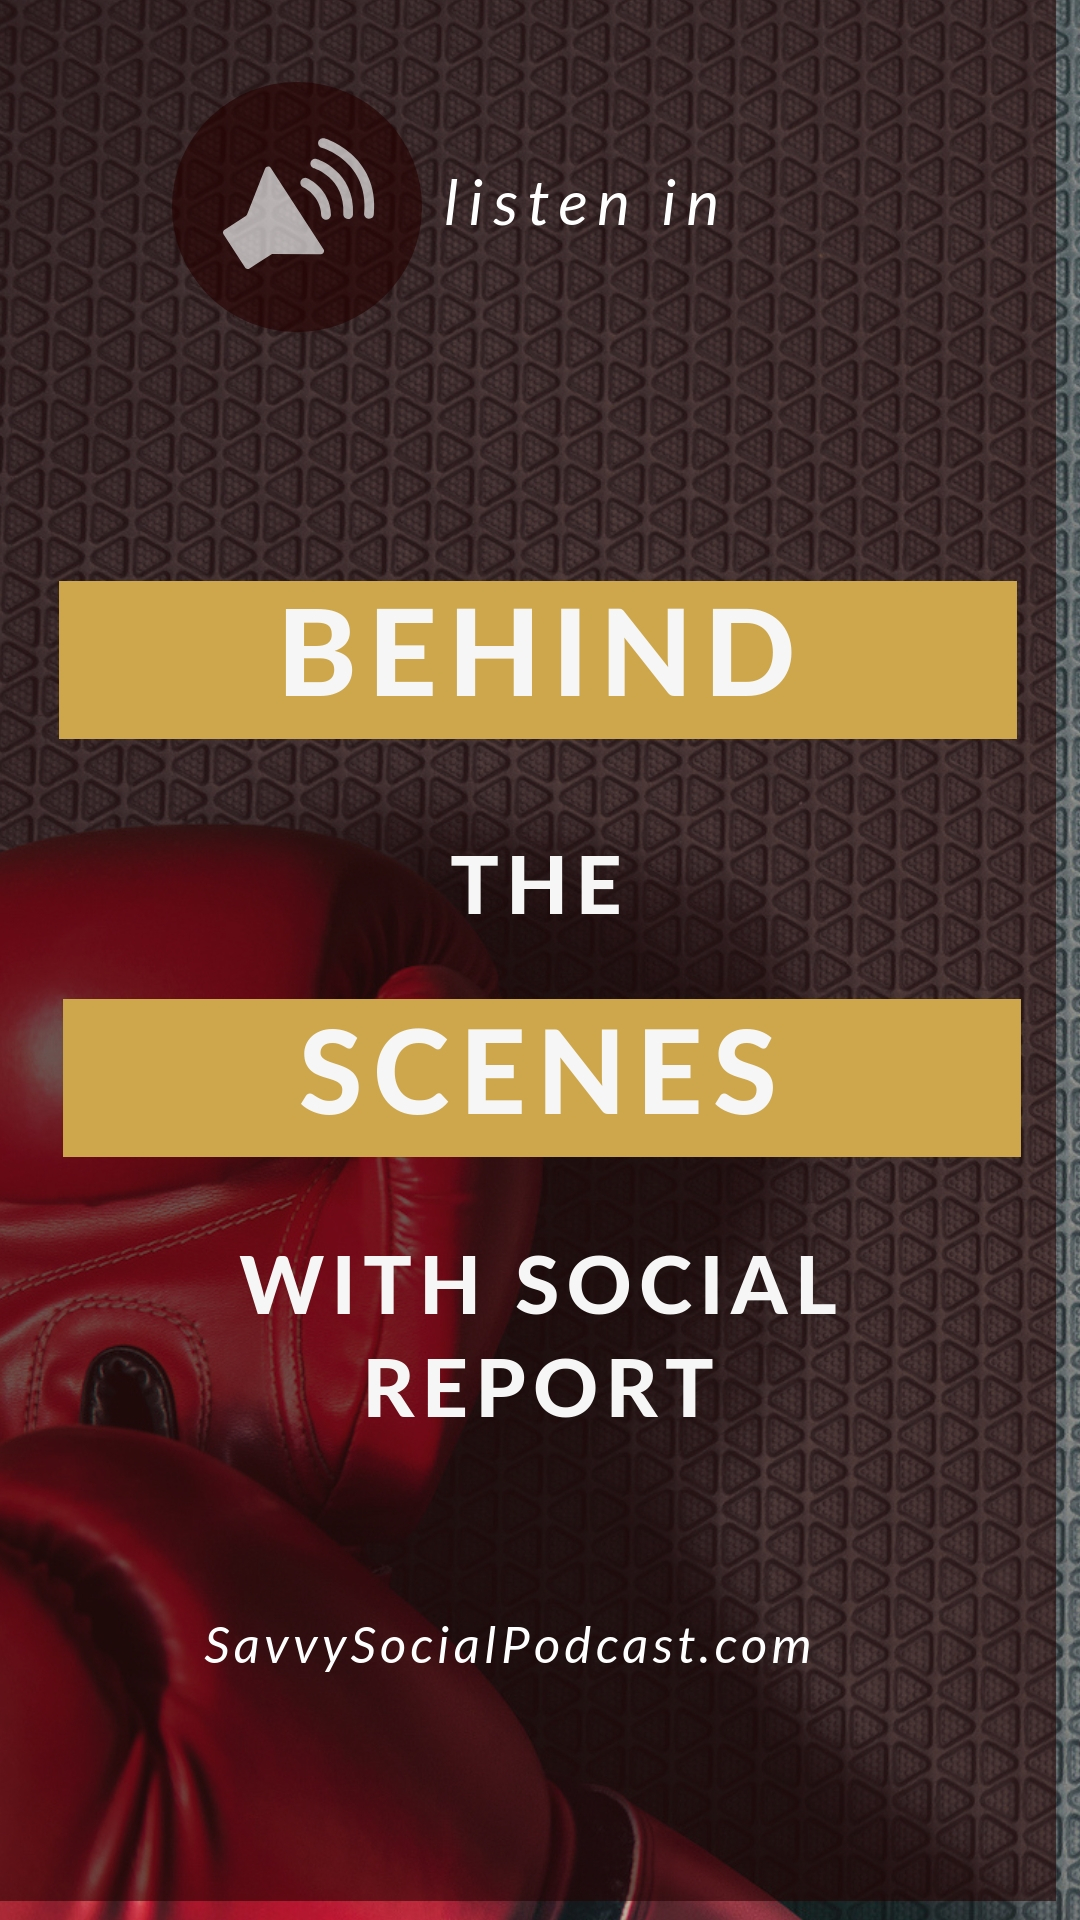 Behind-the-Scenes with Social Report